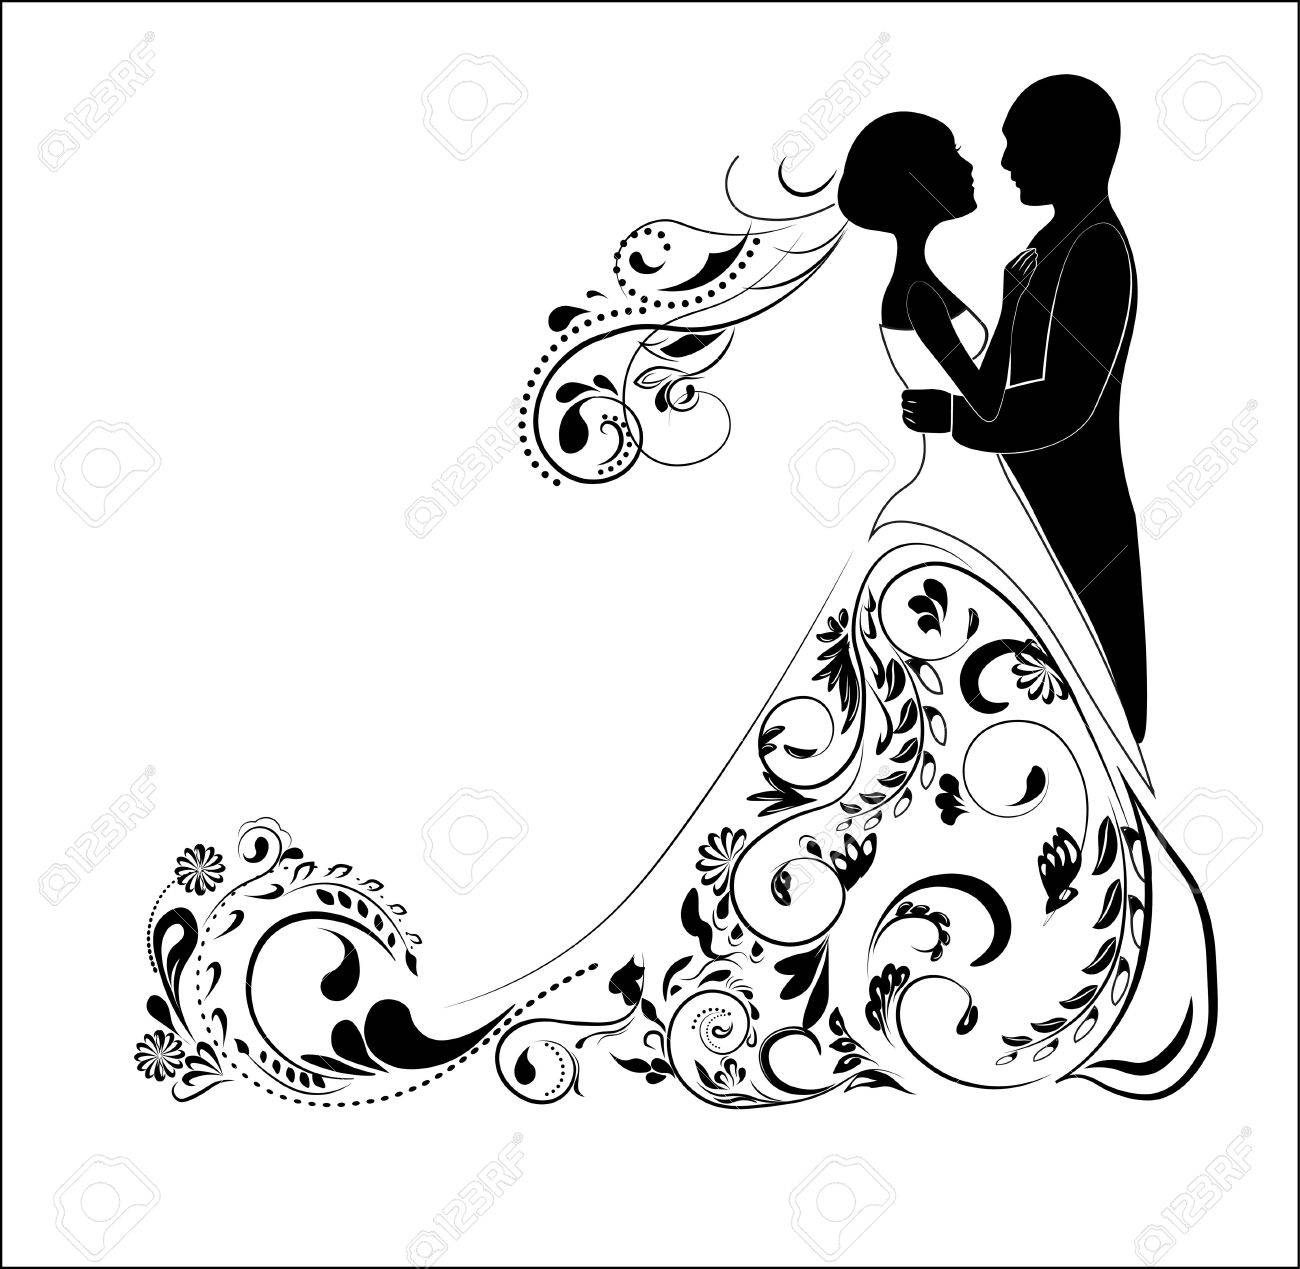 Silhouette Of The Groom And Bride, For Wedding Invitation Royalty ...